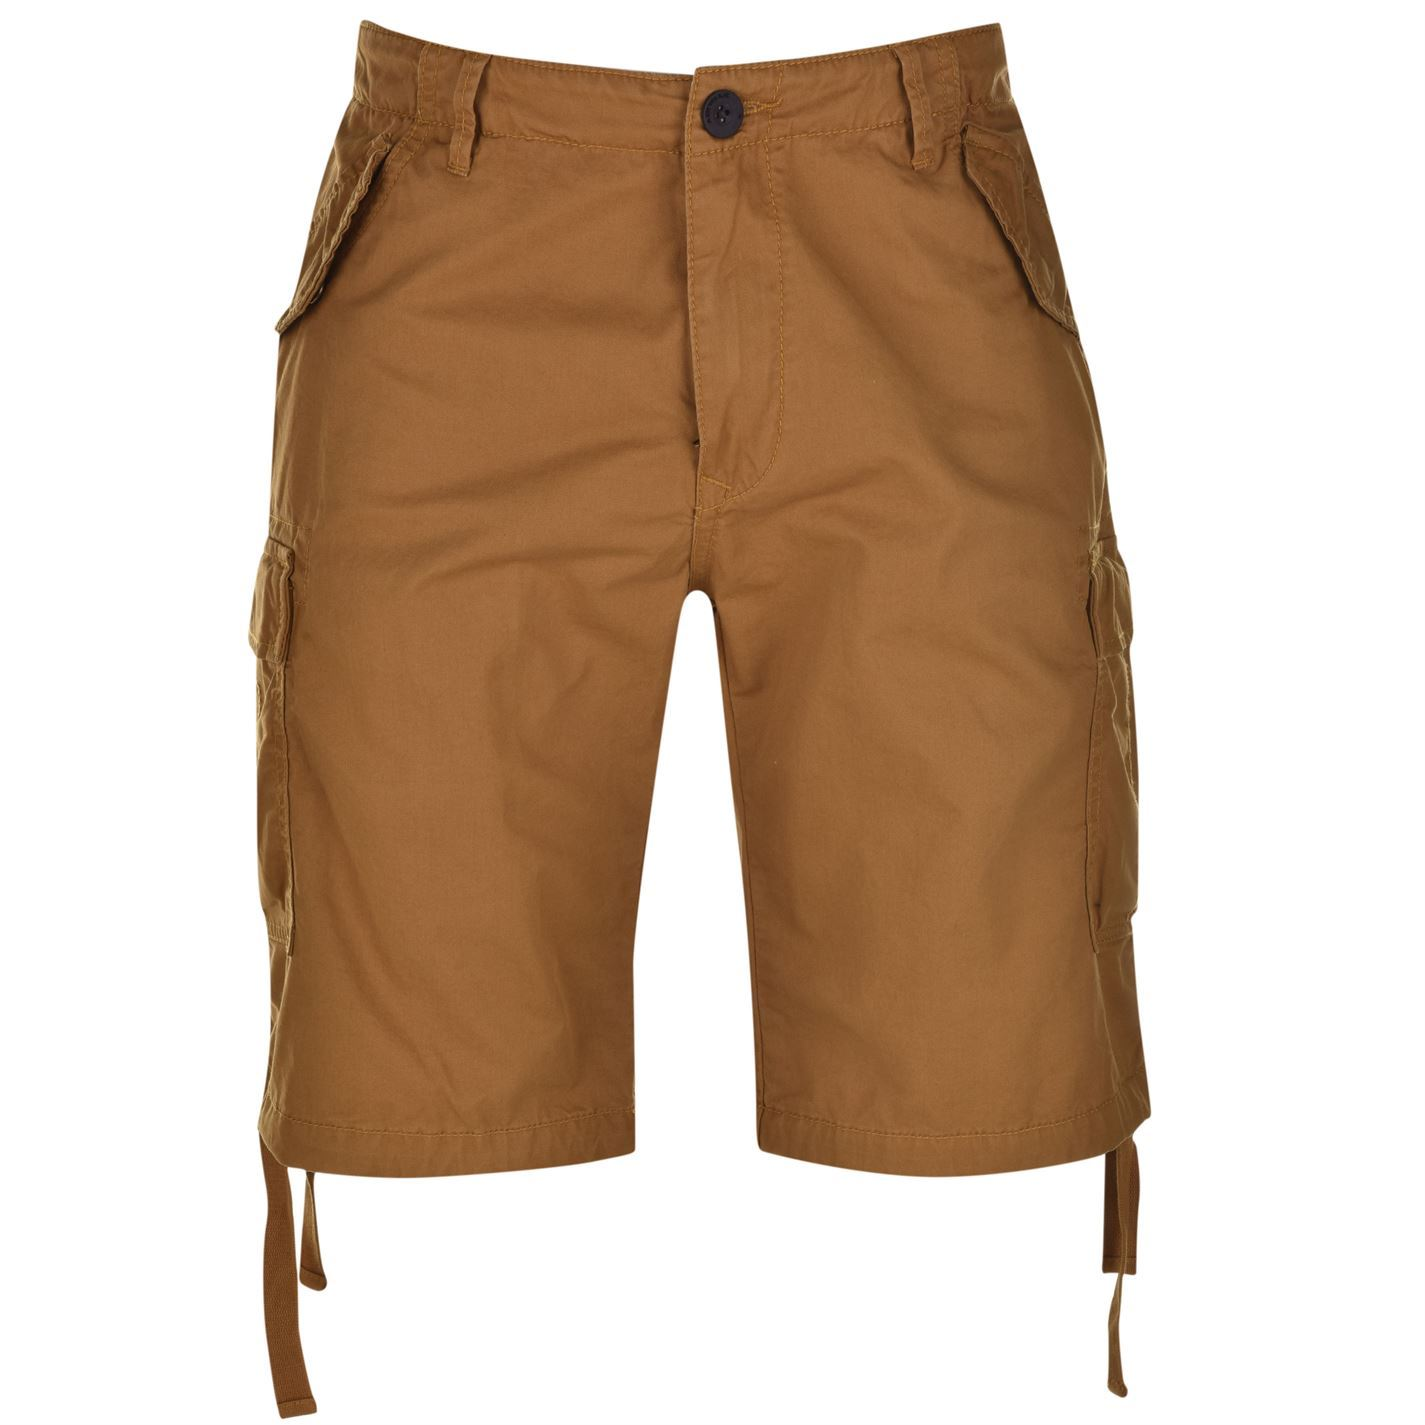 Airwalk Mens Gents Cargo Shorts Pants Casual Everyday